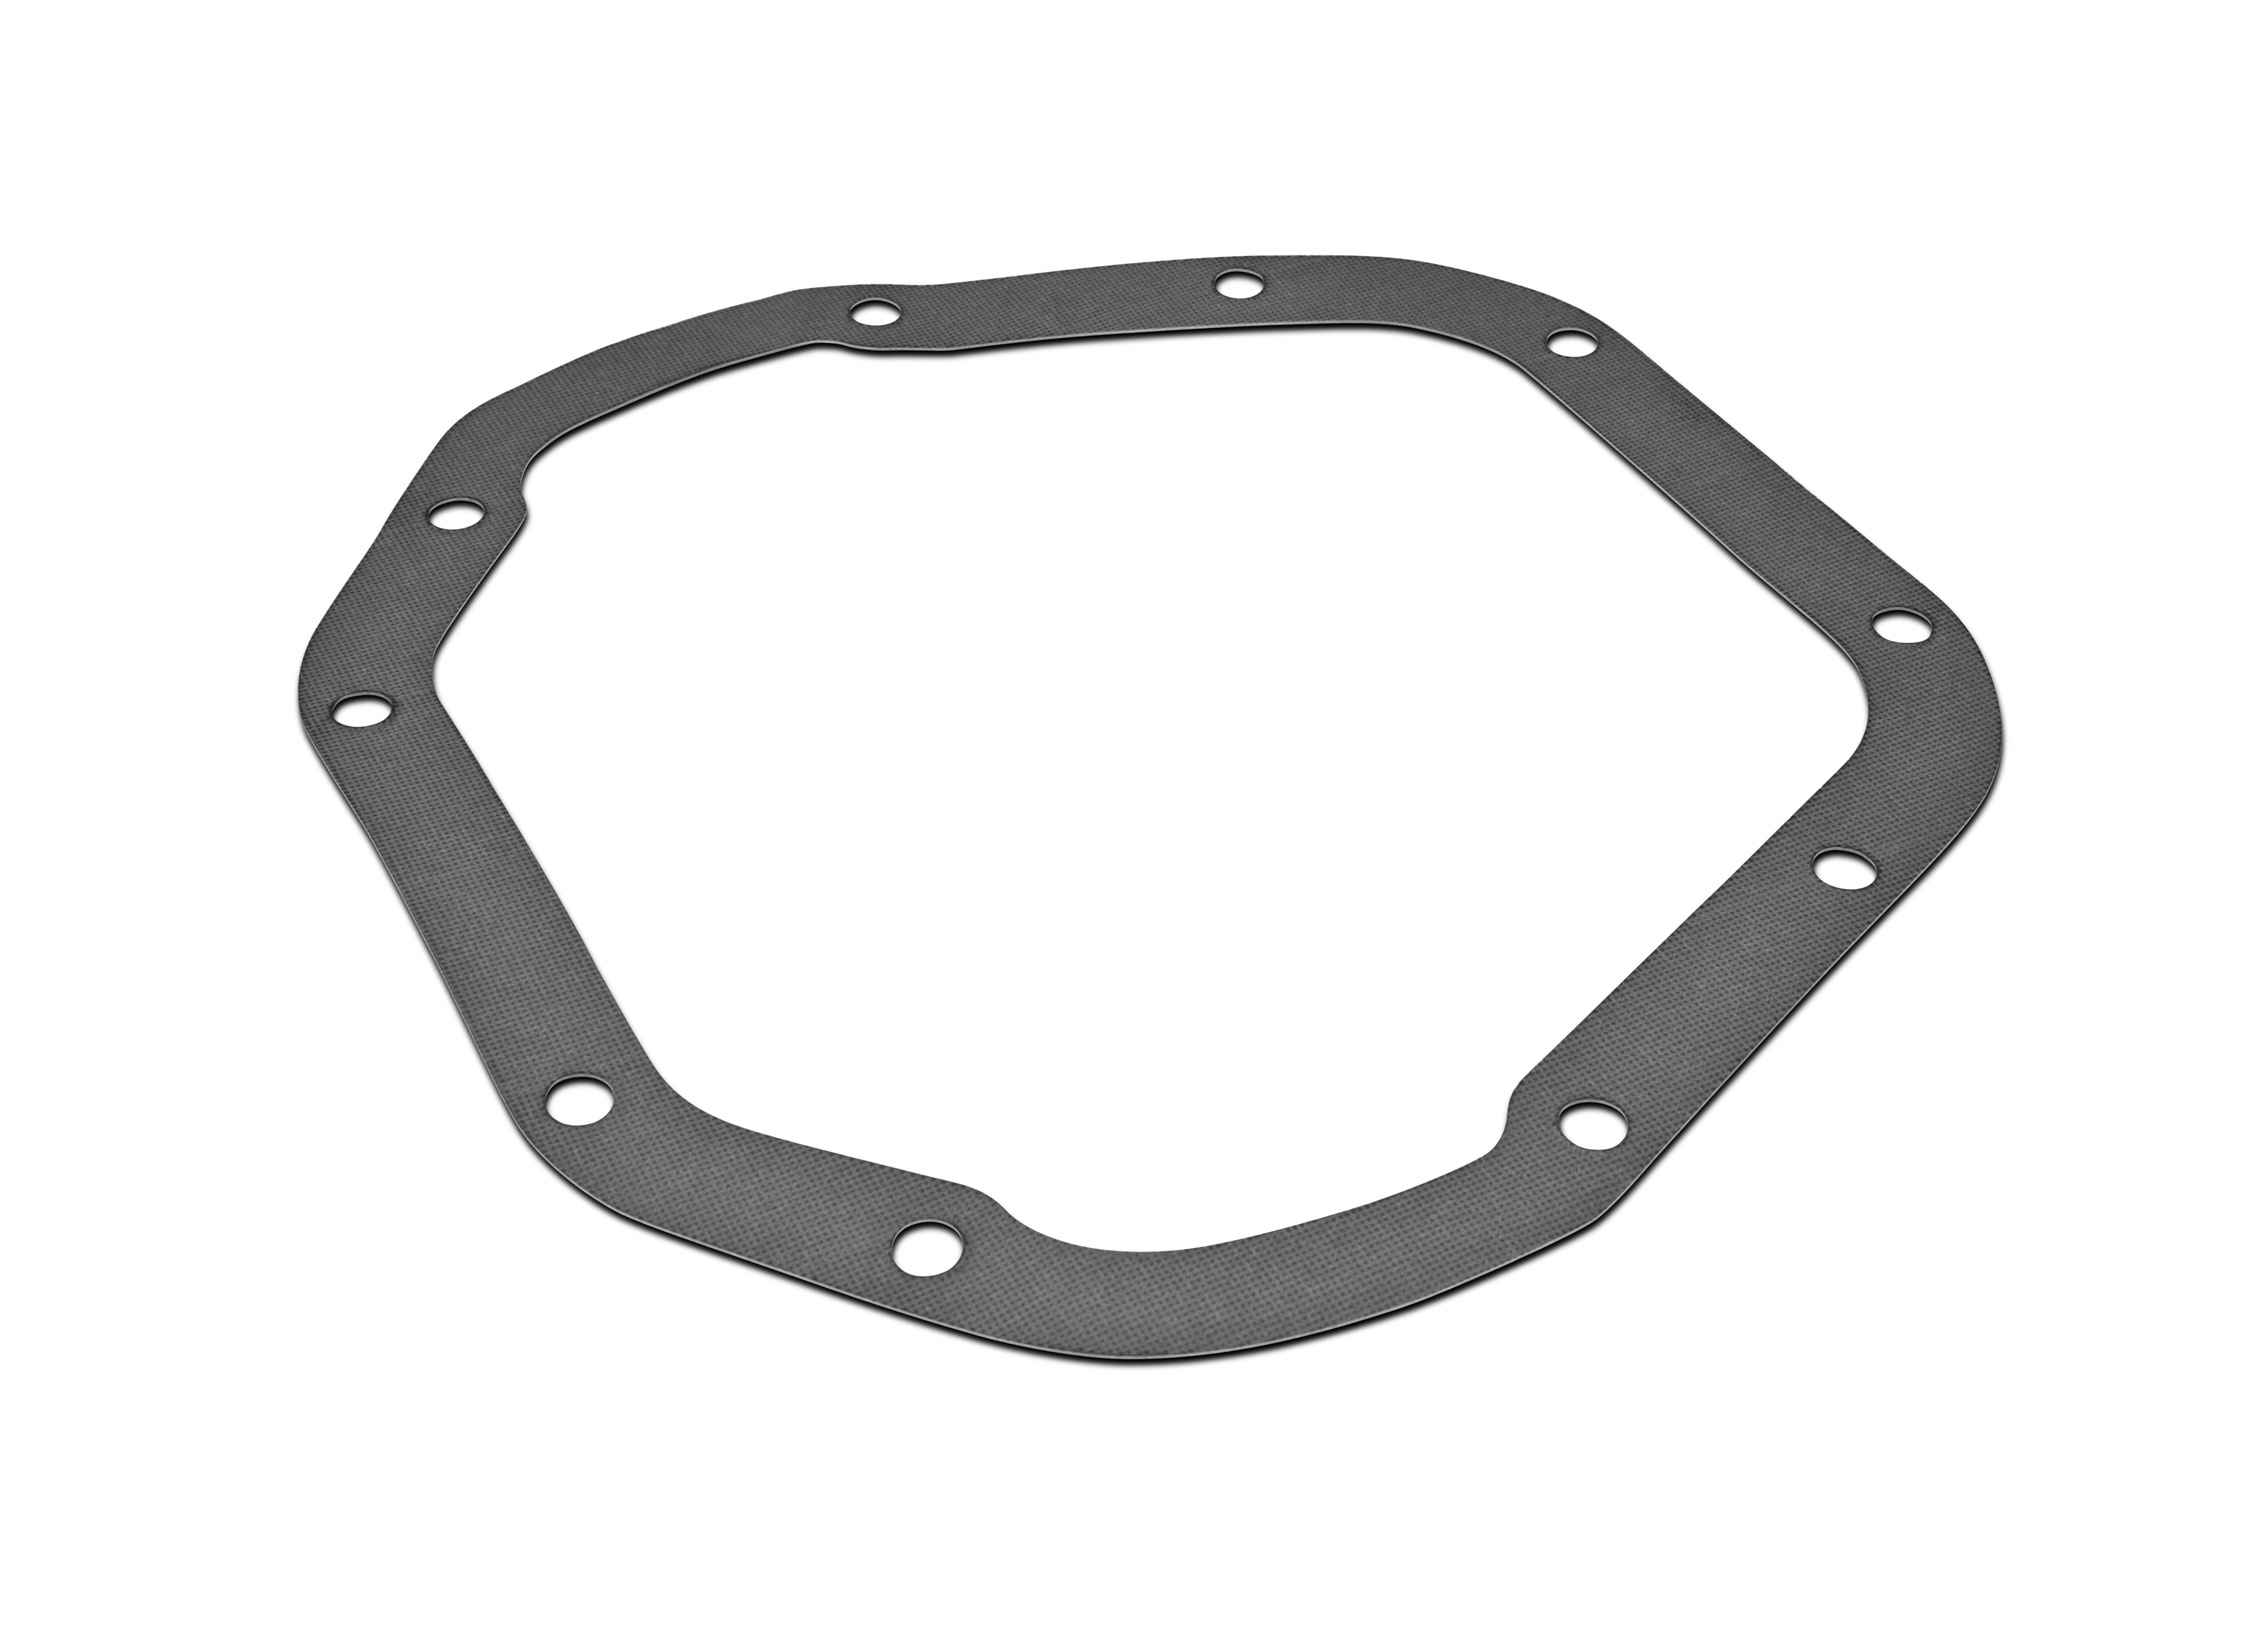 OEM 2013 Jeep Wrangler JK 2-Door Differential Gasket (Part #P5160063)